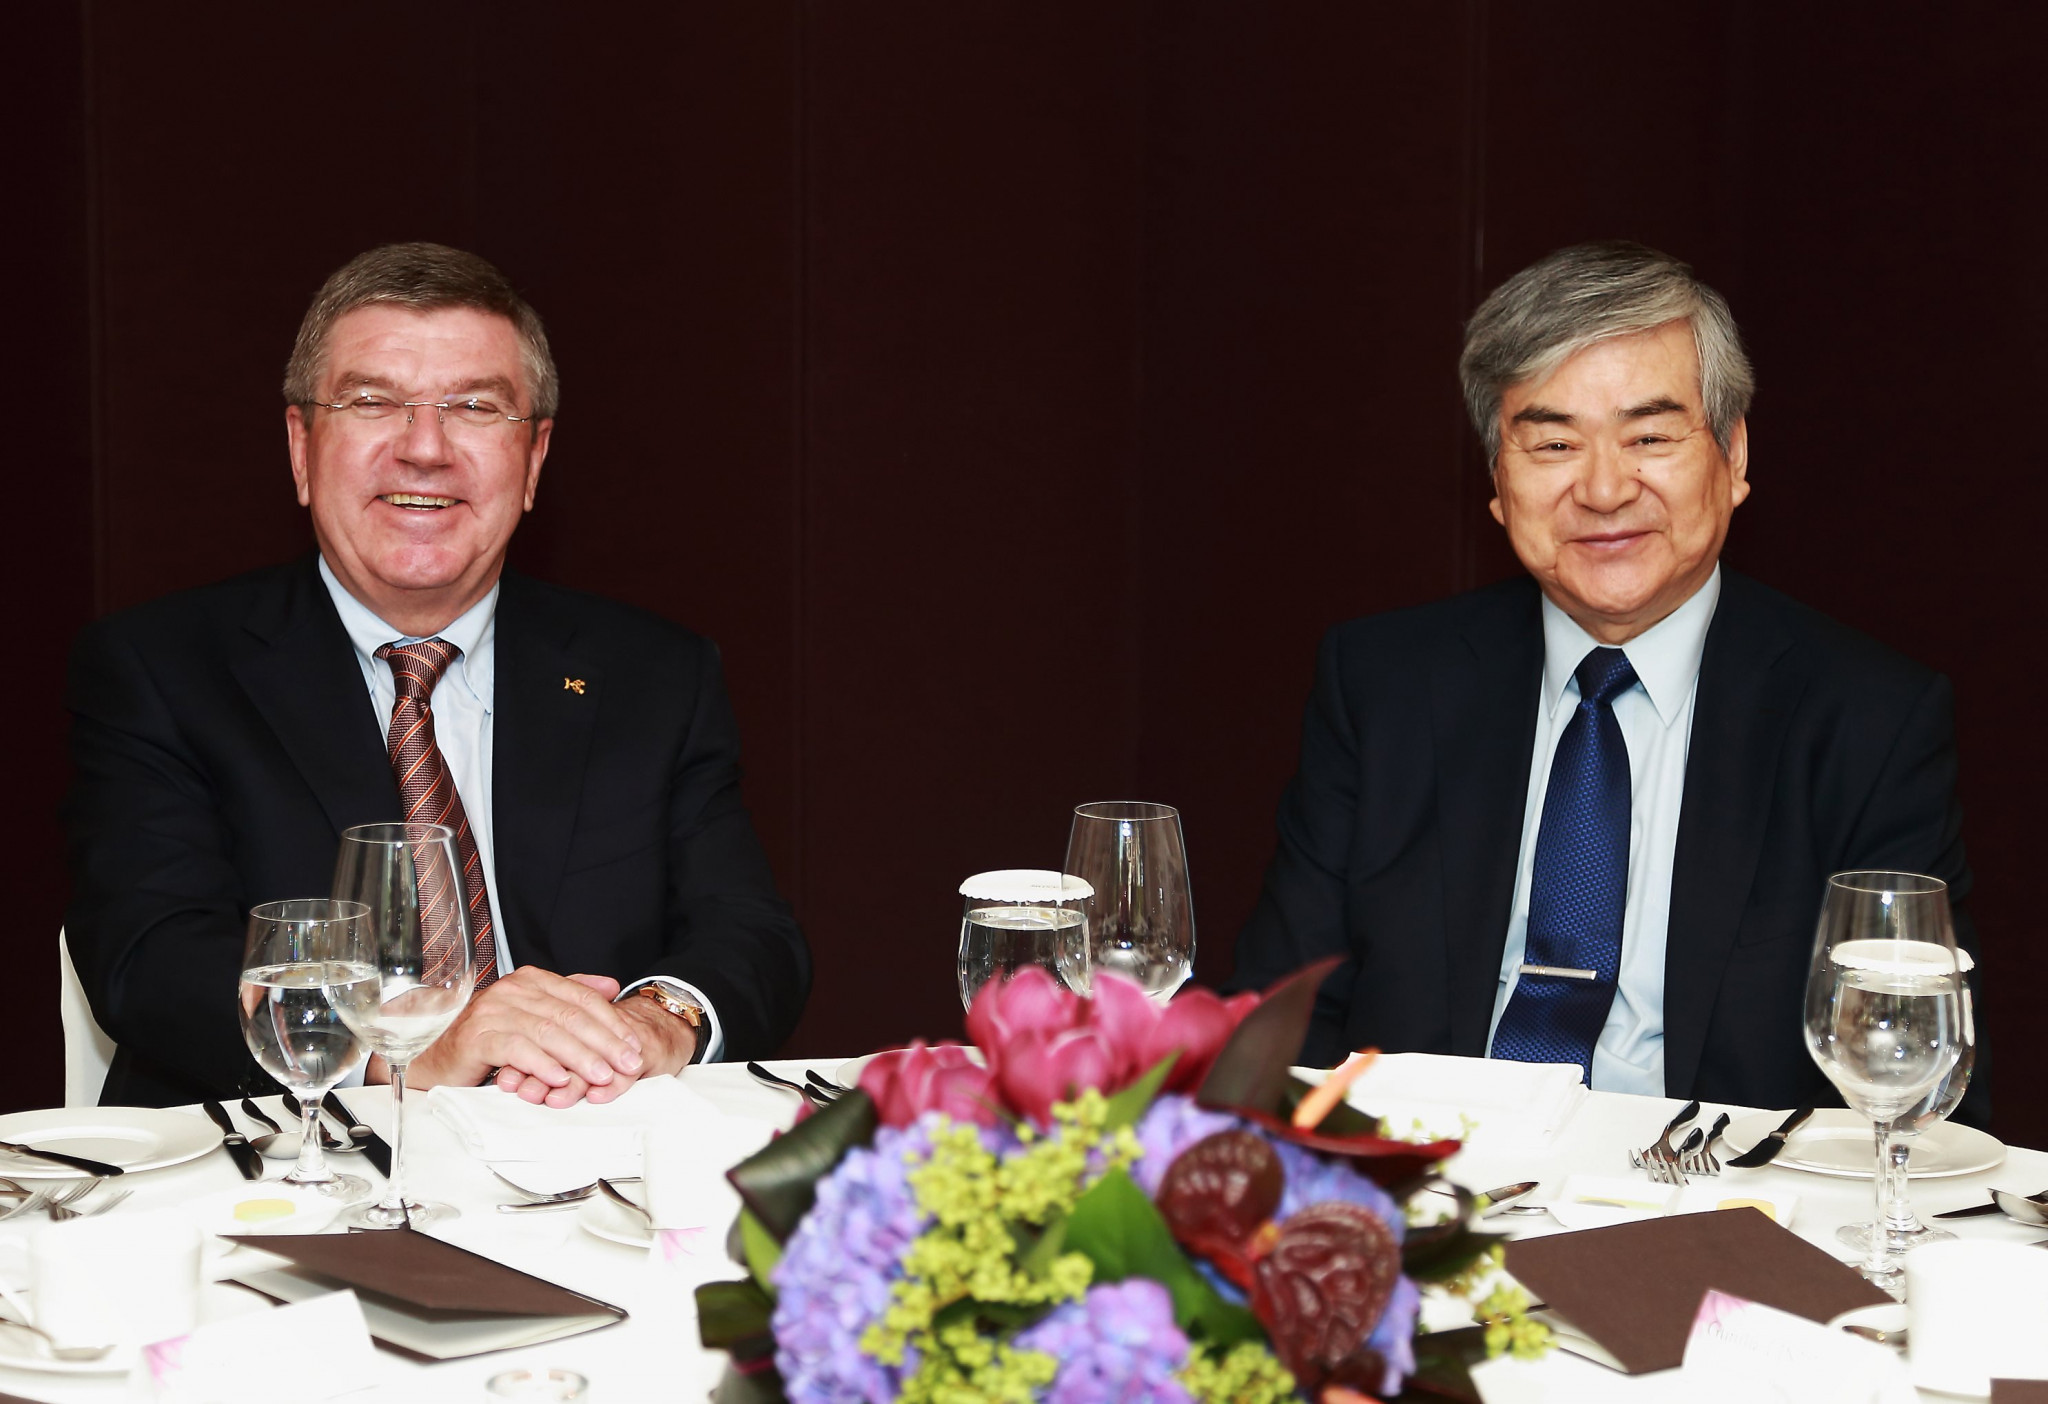 Yang Ho Cho,pictured with IOC President Thomas Bach, was credited with helping getting preparations for Pyeongchang 2018 back on track when he returned in 2014, only to be forced out again two years later ©Pyeongchang 2018